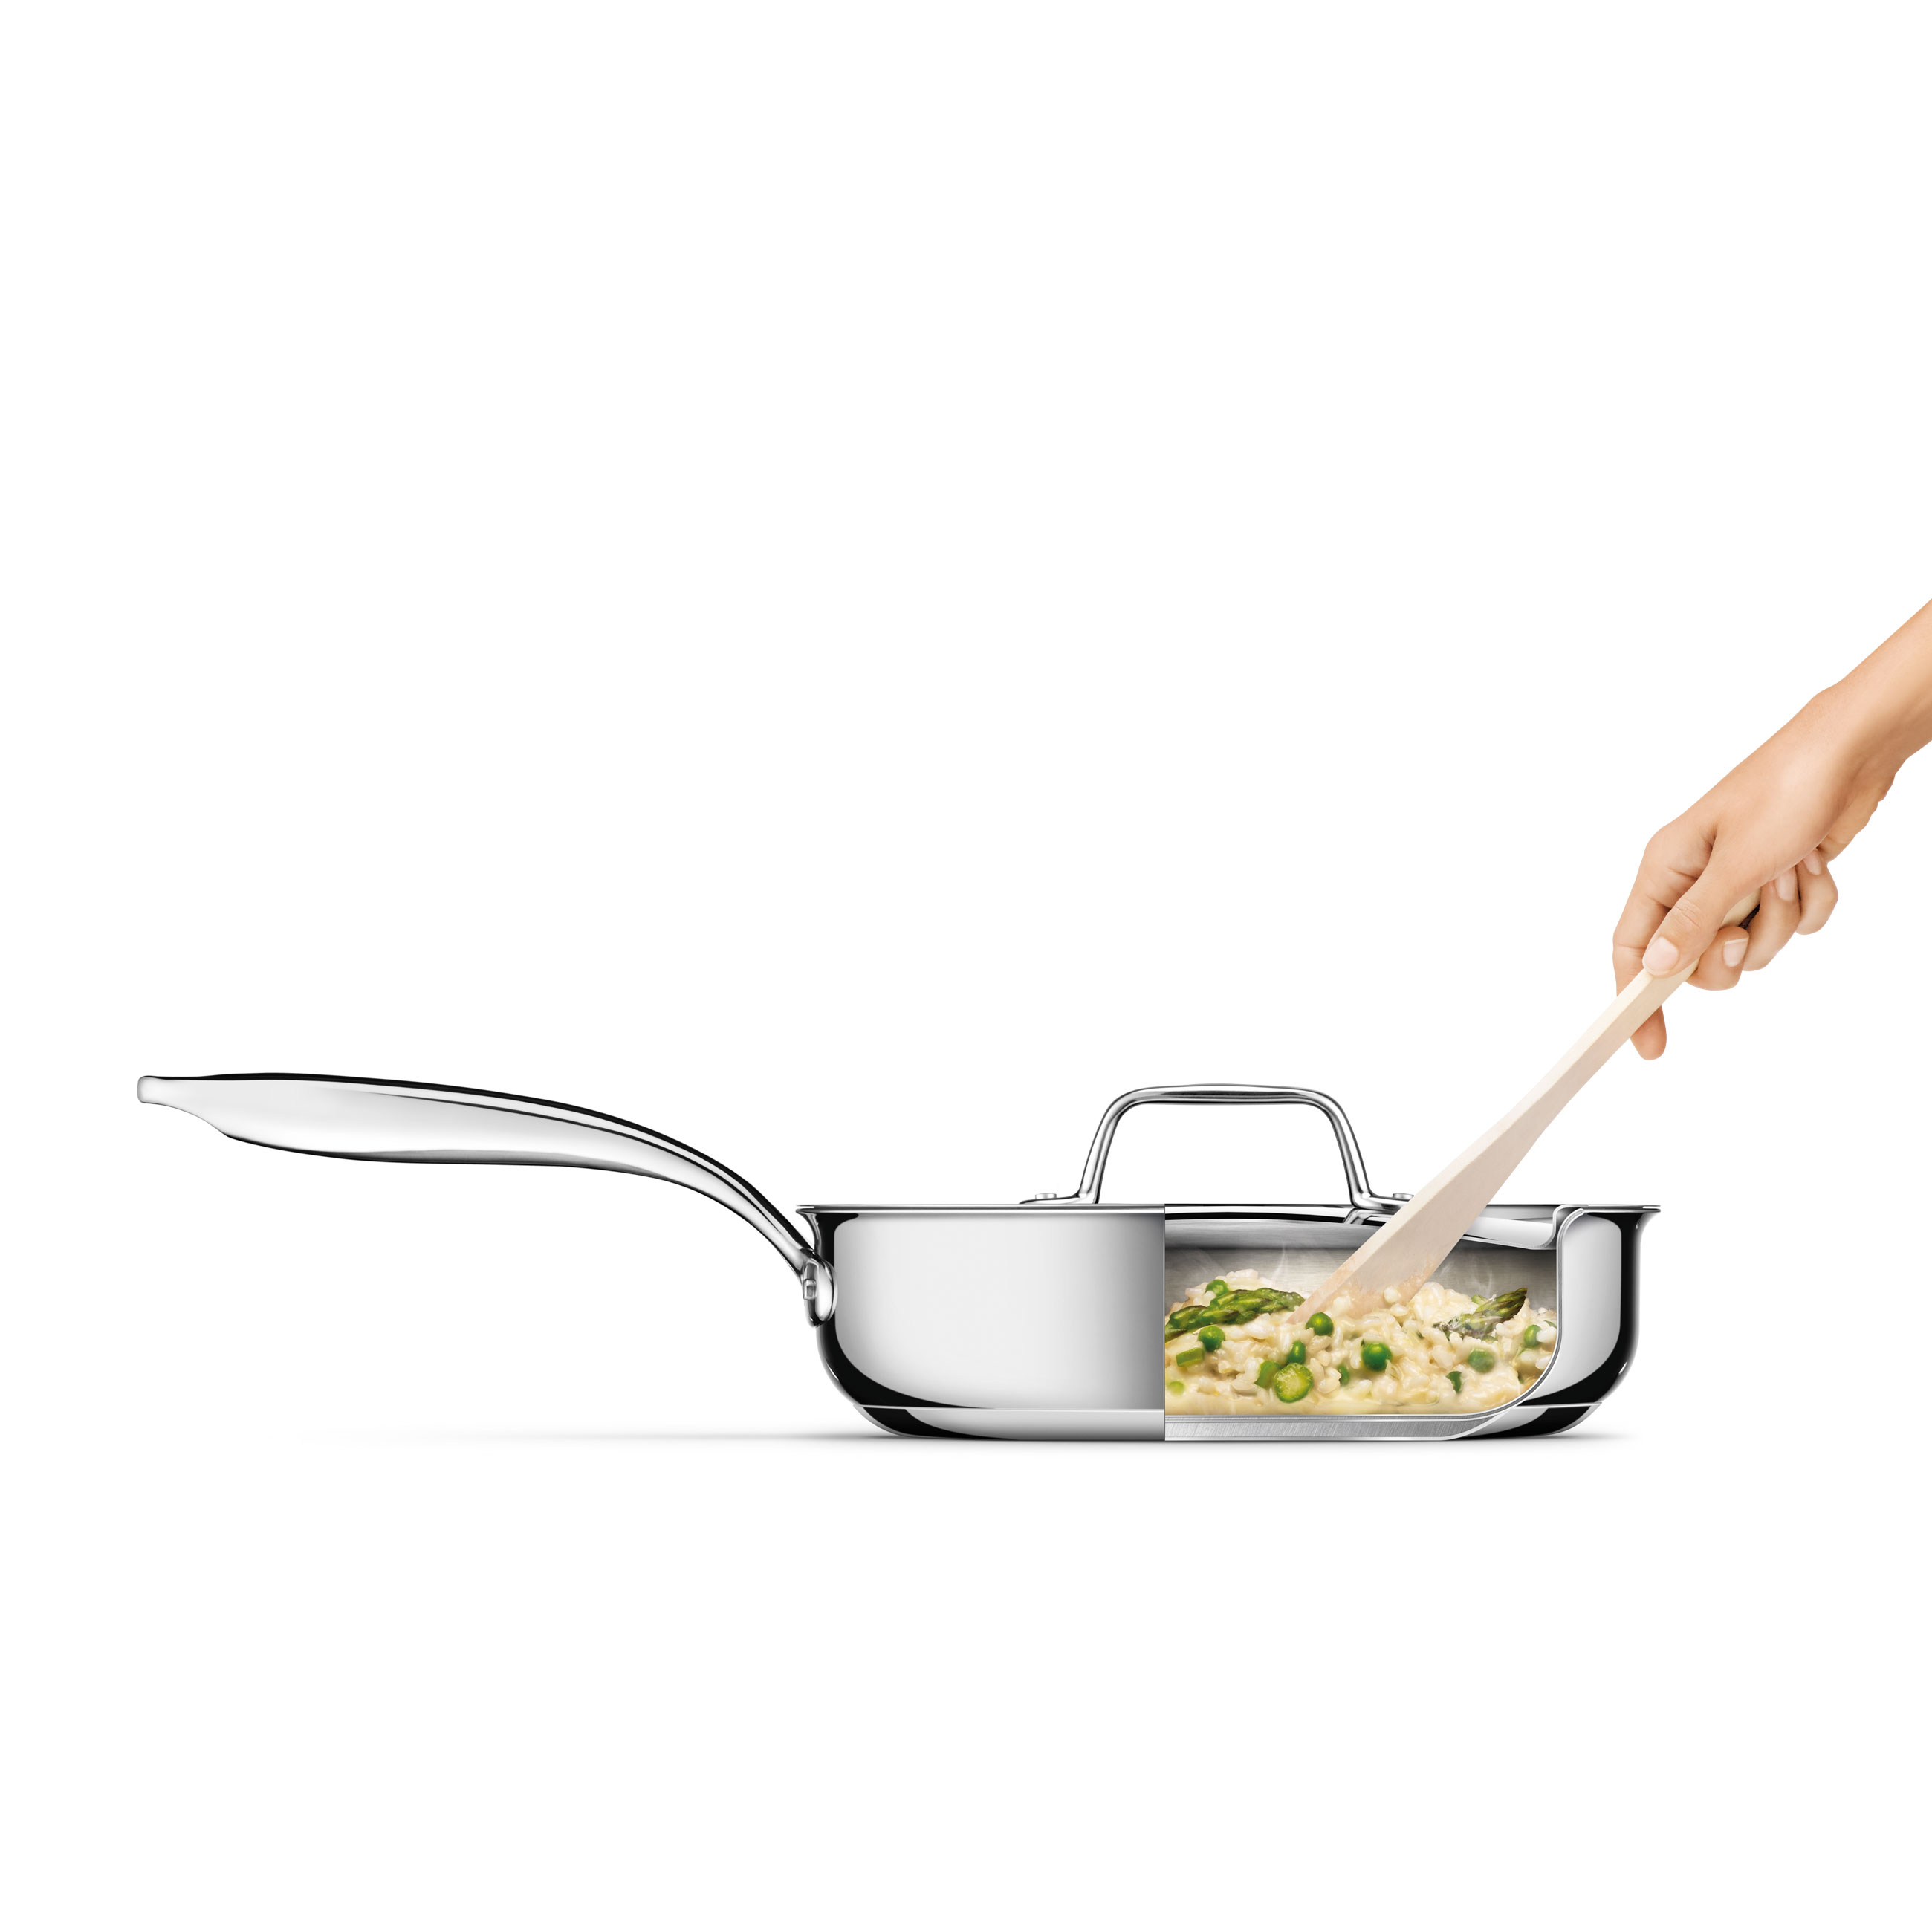 Thermal Pro Clad Stainless Steel Covered 305qt Saute Pan in Polished Stainless Steel with ergonomic handle